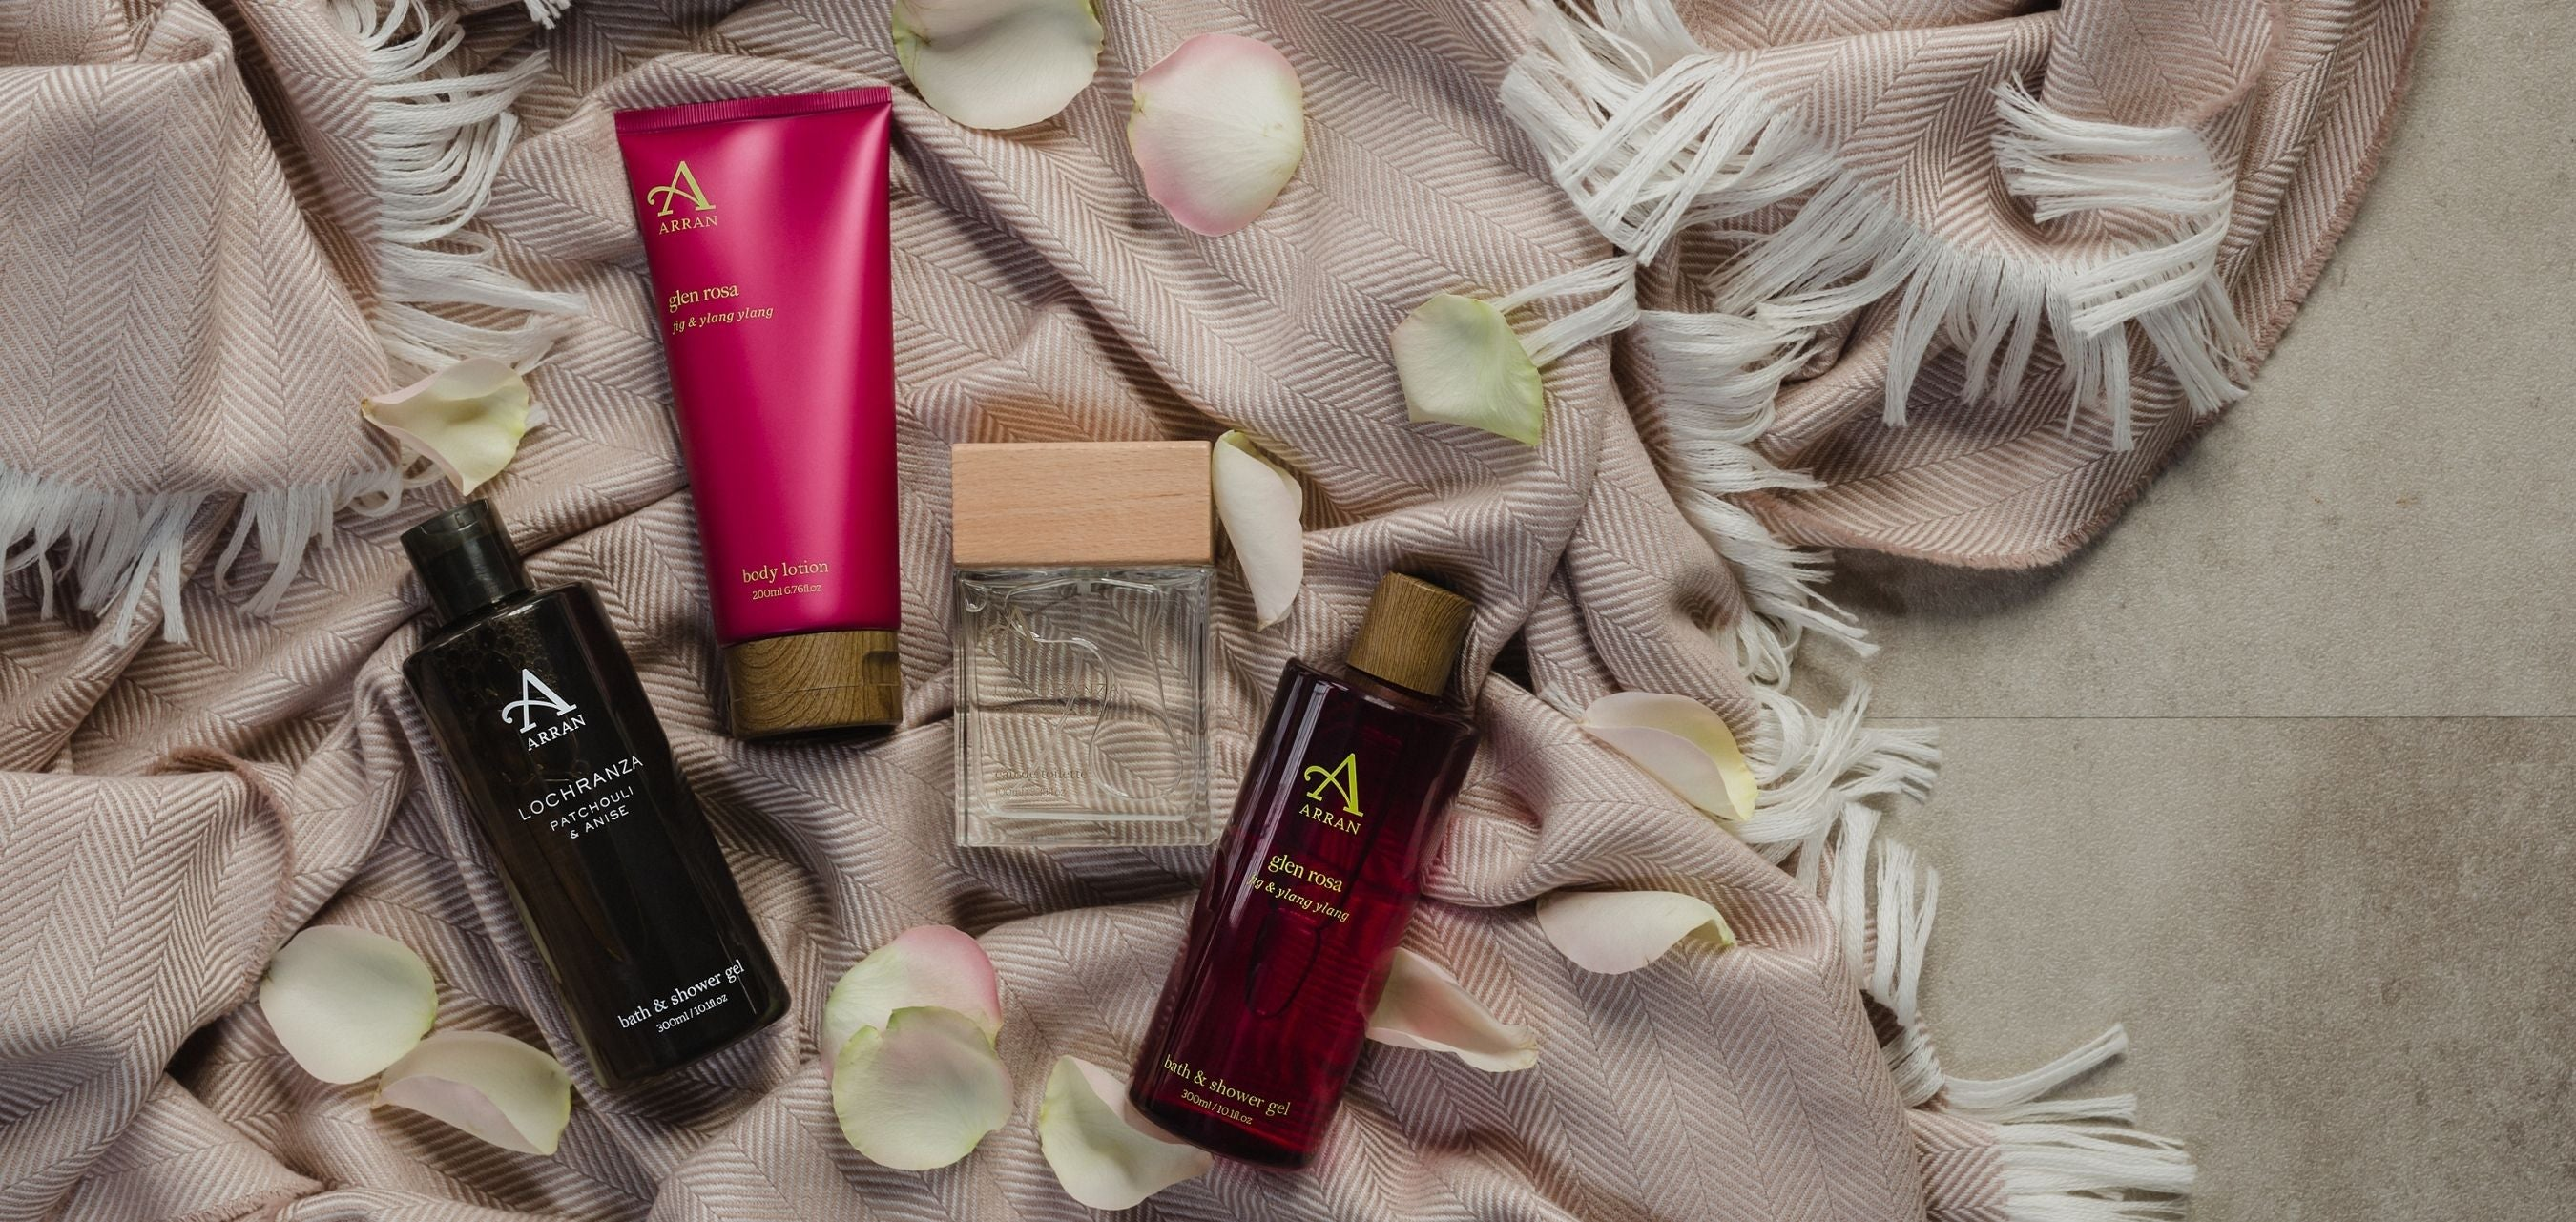 Men's shower gel and aftershave and women's body lotion and shower gel, placed on pale pink blanket surrounded with white rose petals.